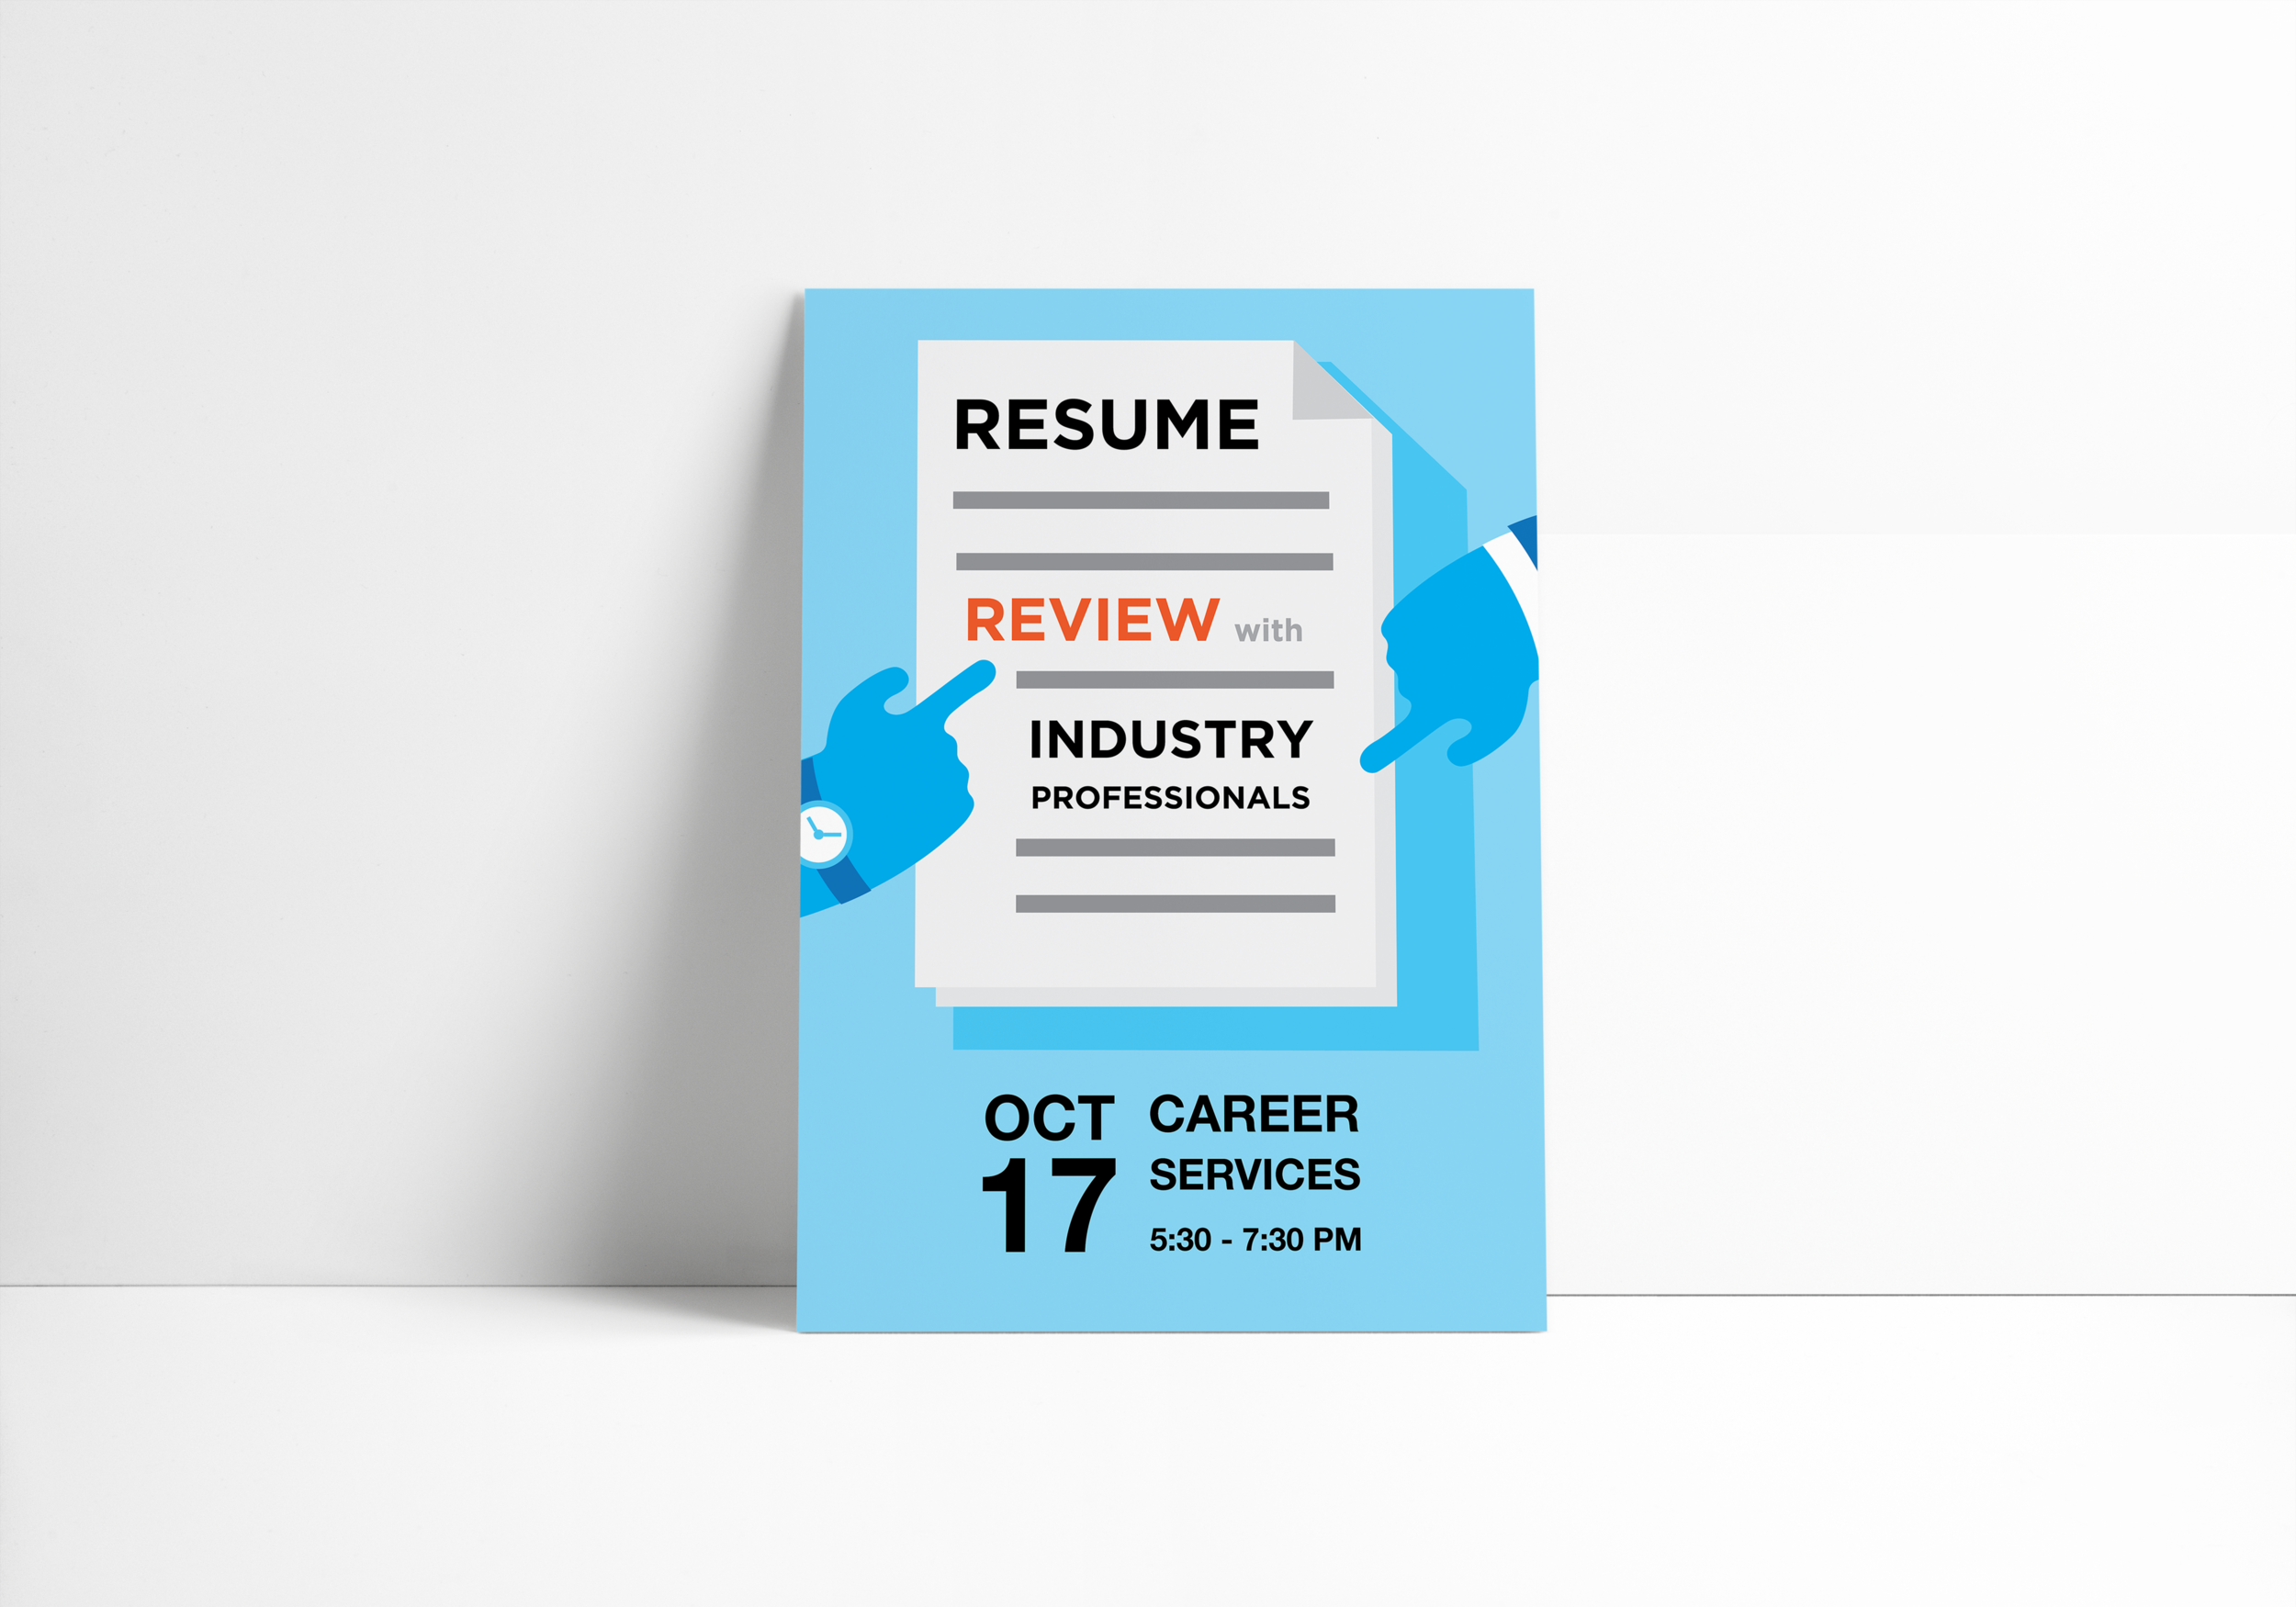 industry pros poster mockup.png